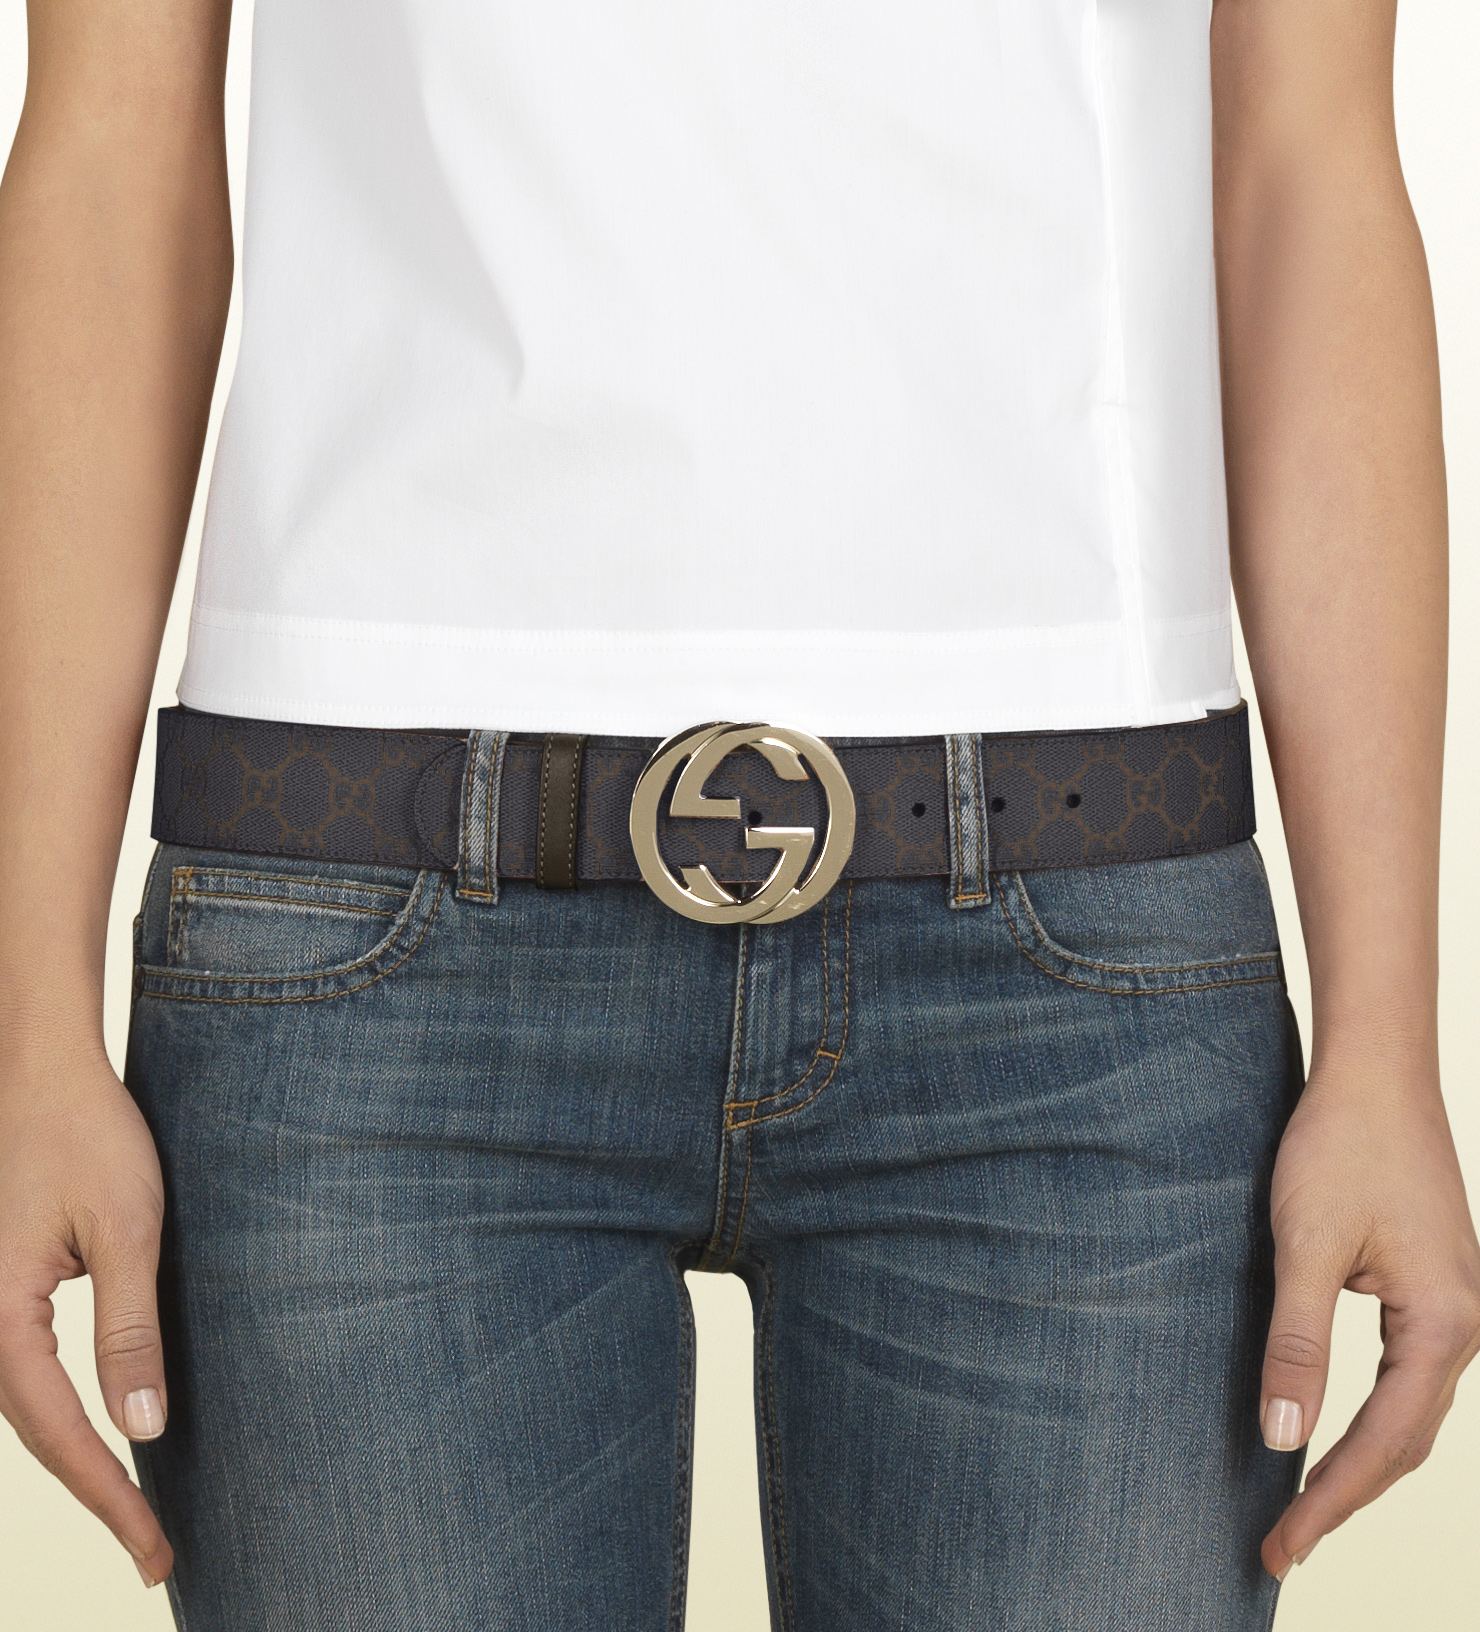 9c3bad956 Gucci Gg Supreme Canvas Belt with Interlocking G Buckle in Black for ...